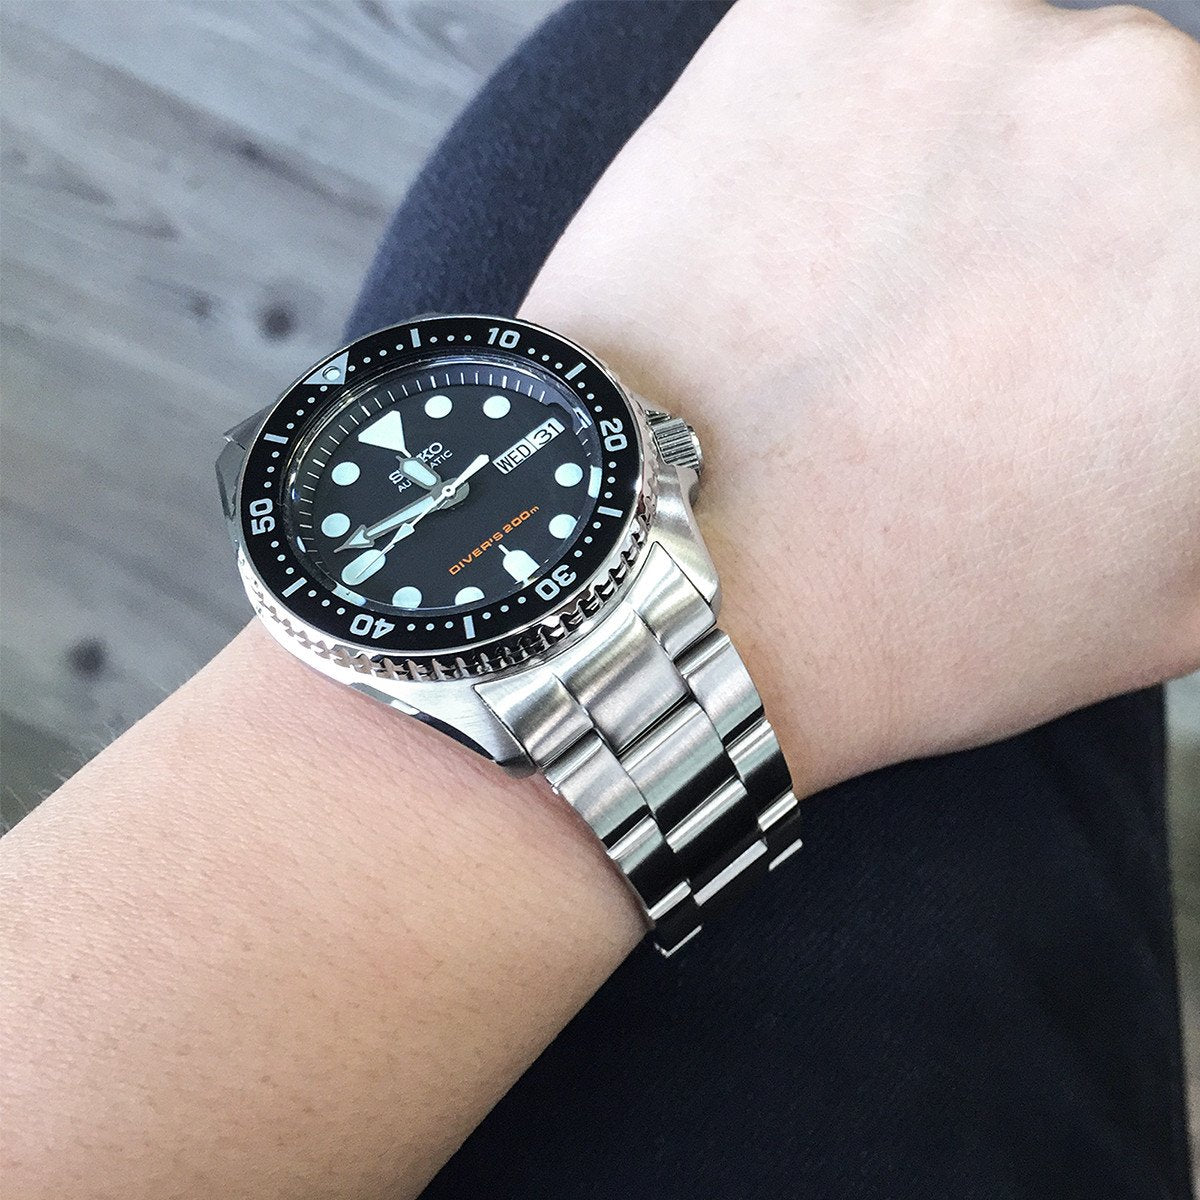 20mm Super-O Boyer Watch Bracelet for Seiko SKX013 Brushed 316L Stainless Steel Sub-Clasp Strapcode Watch Bands